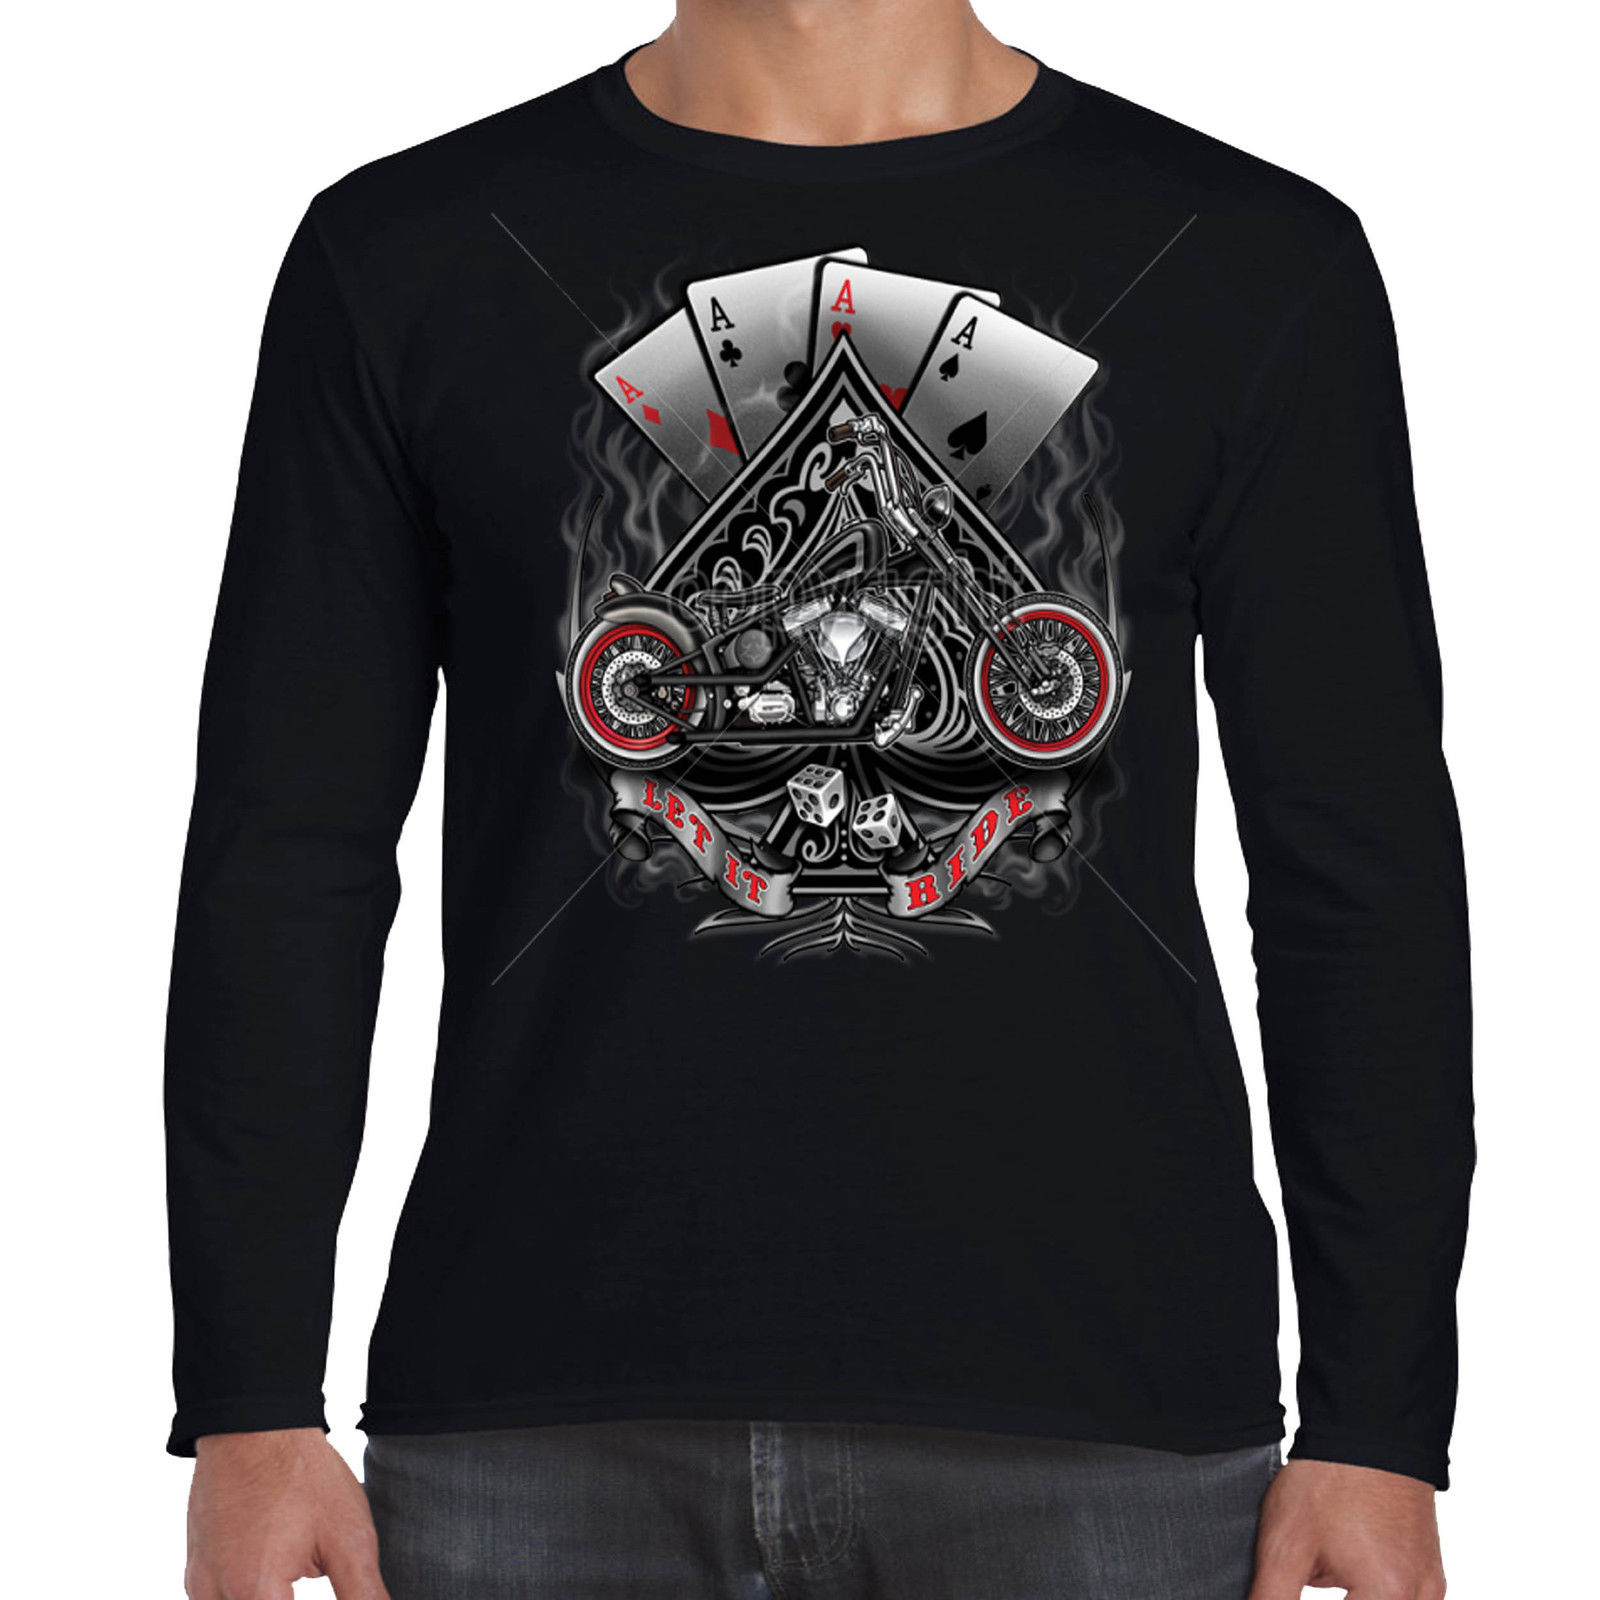 104aca90af5 Men's Biker Long Sleeve T shirt Aces Vintage Classic Bike Motorbike  Clothing 01 | Hot Rod 58